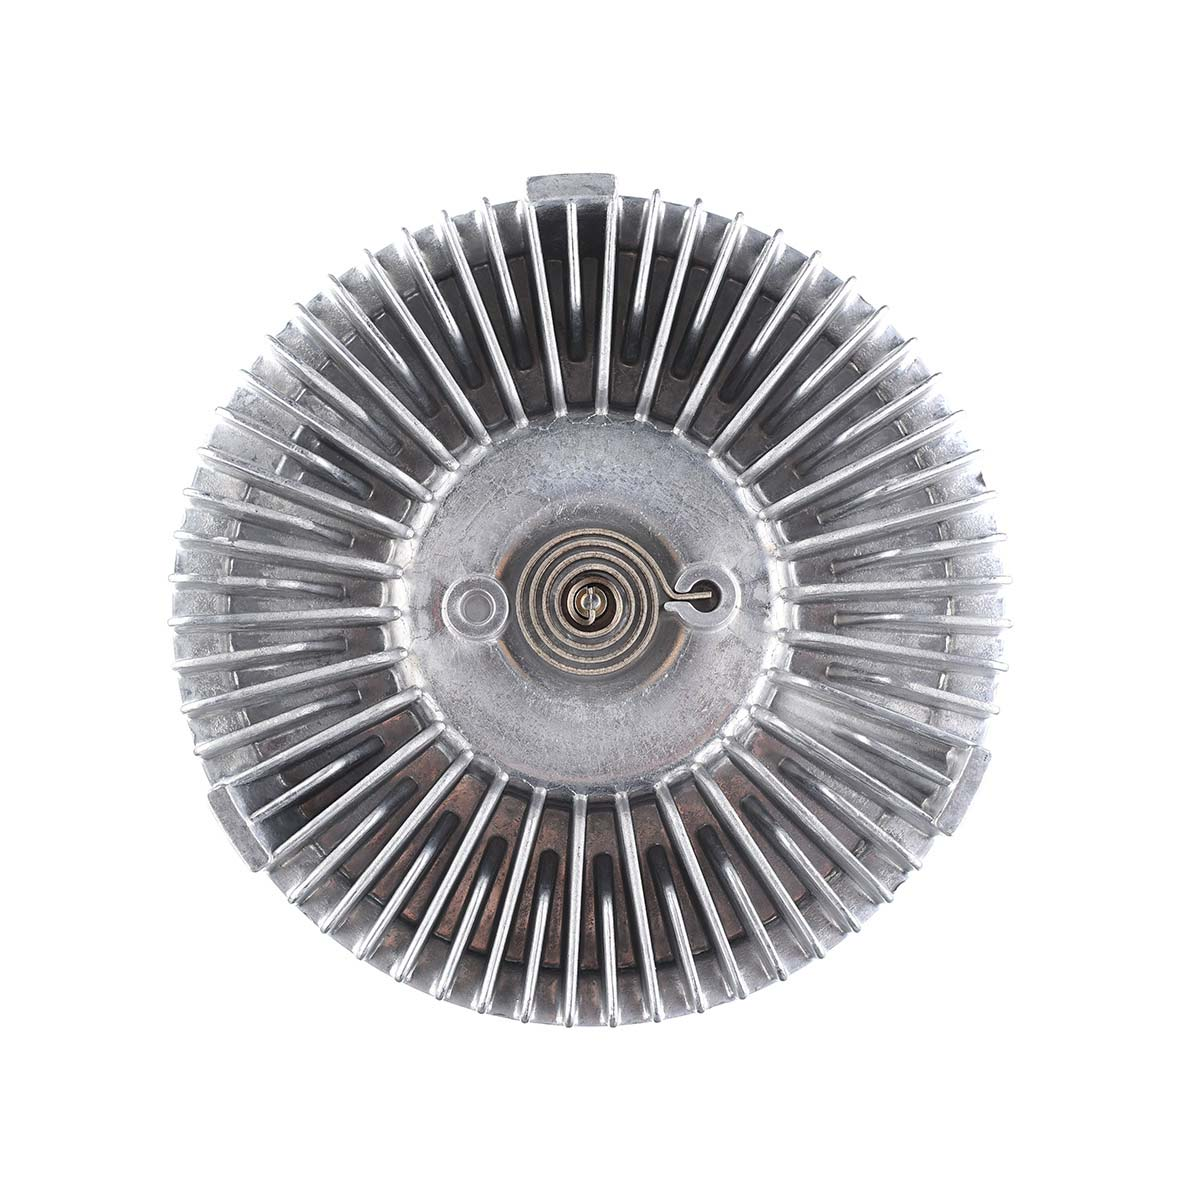 small resolution of engine cooling fan clutch for ford ranger 1998 1999 2011 explorer sport trac mazda b4000